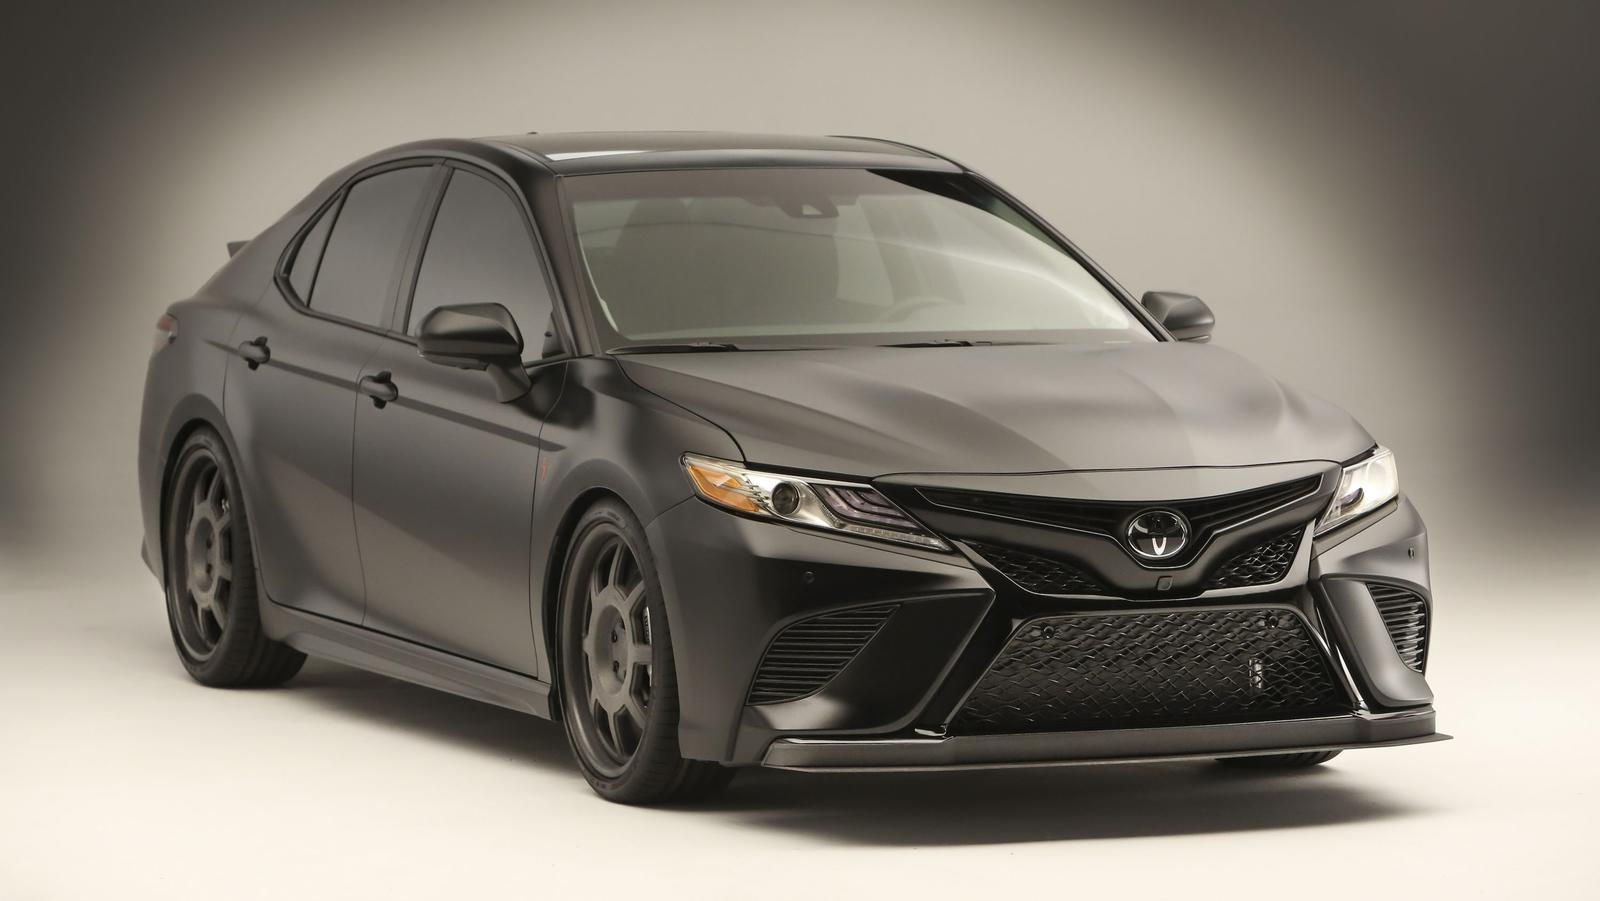 Nascar Champ Truex Jr Designs All Black Toyota Camry For